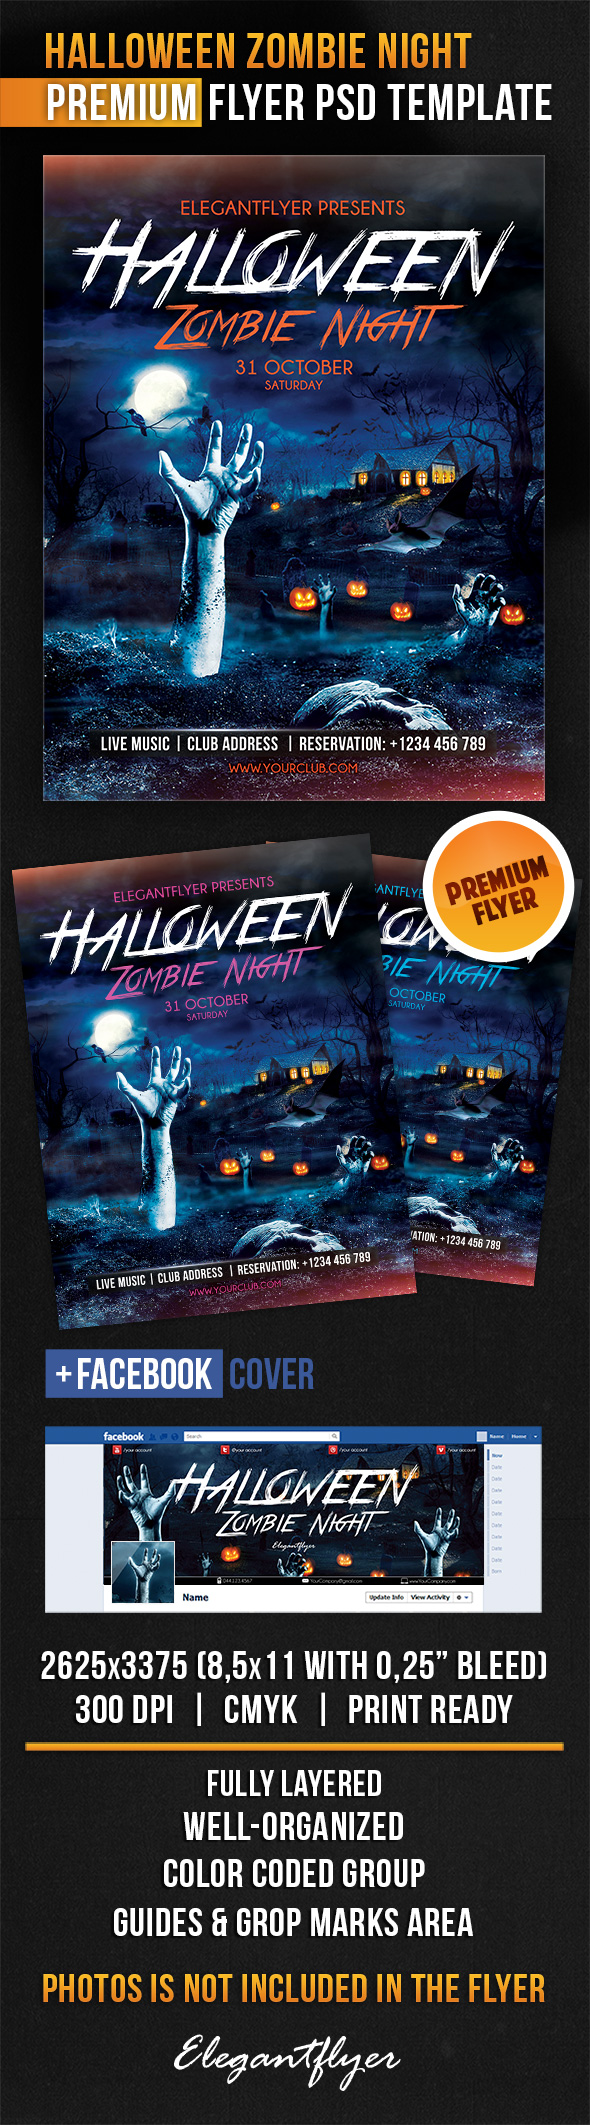 11 Zombie Halloween Flyer Free PSD Images